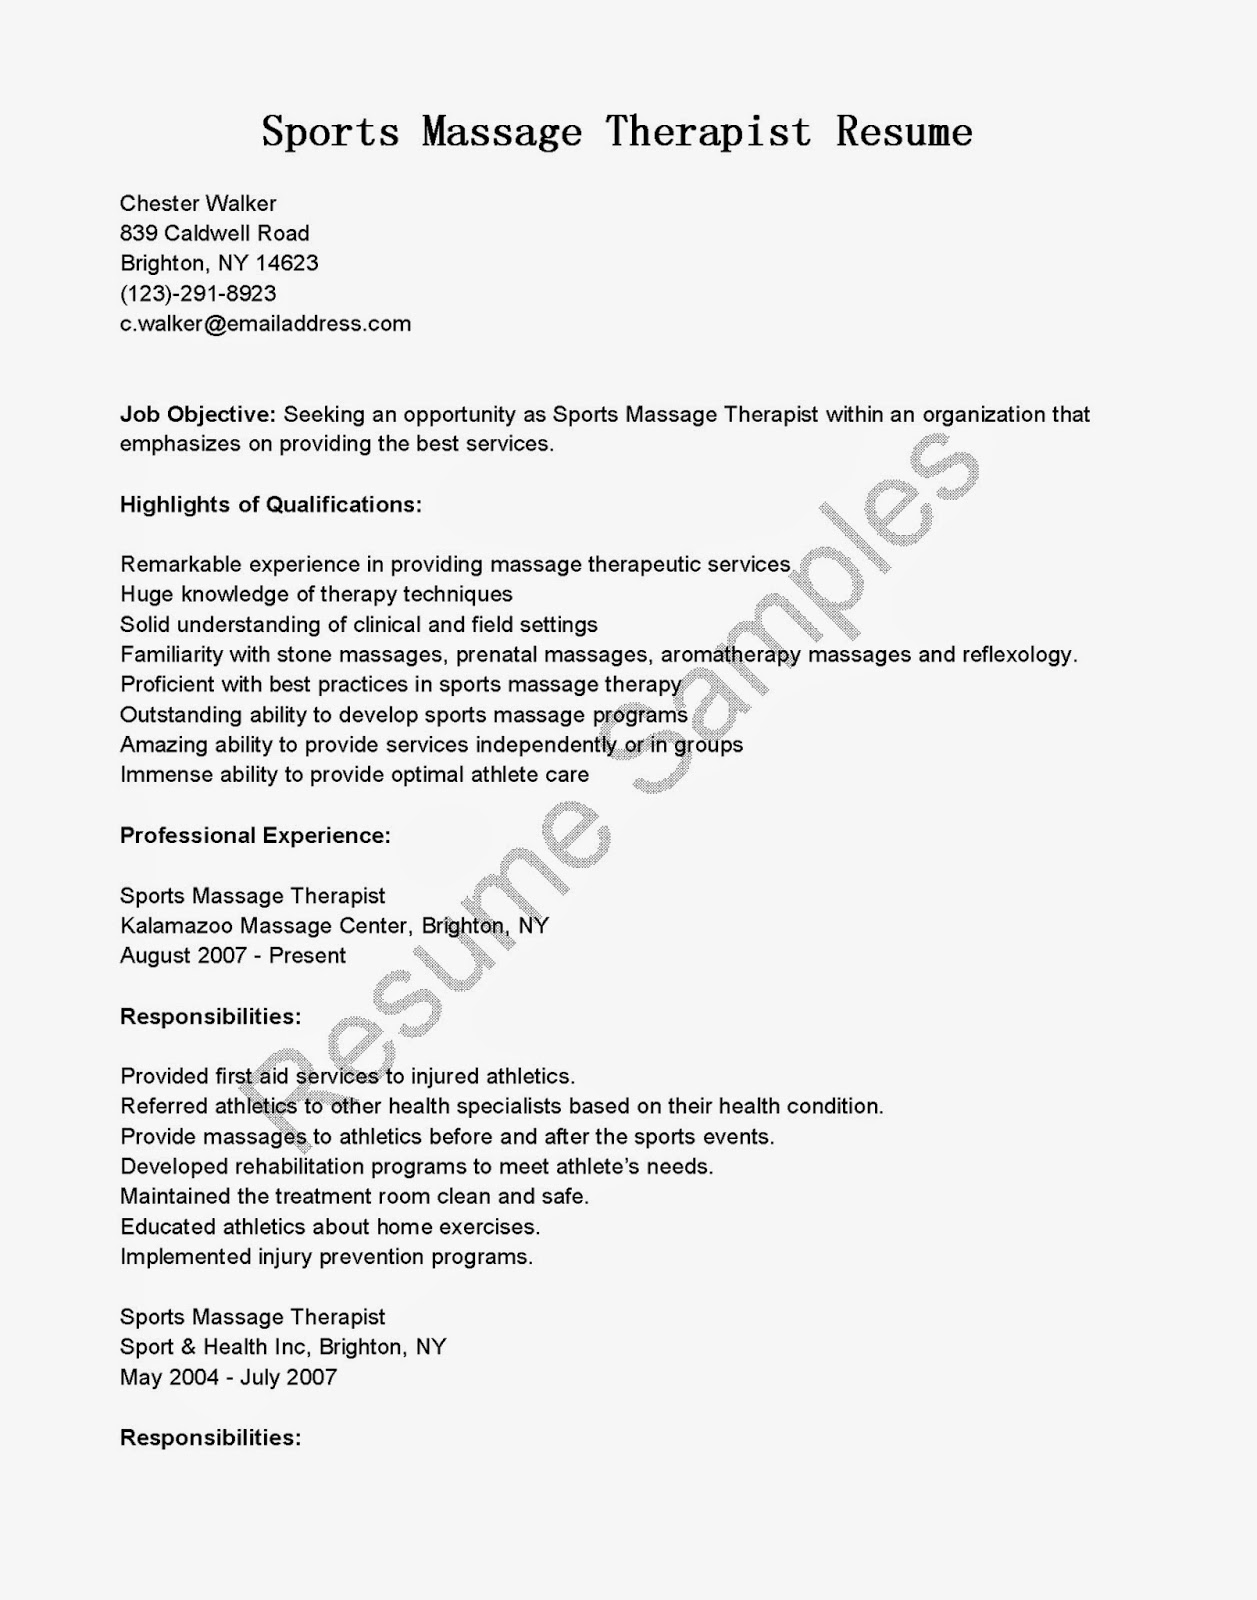 Resume for massage therapy position